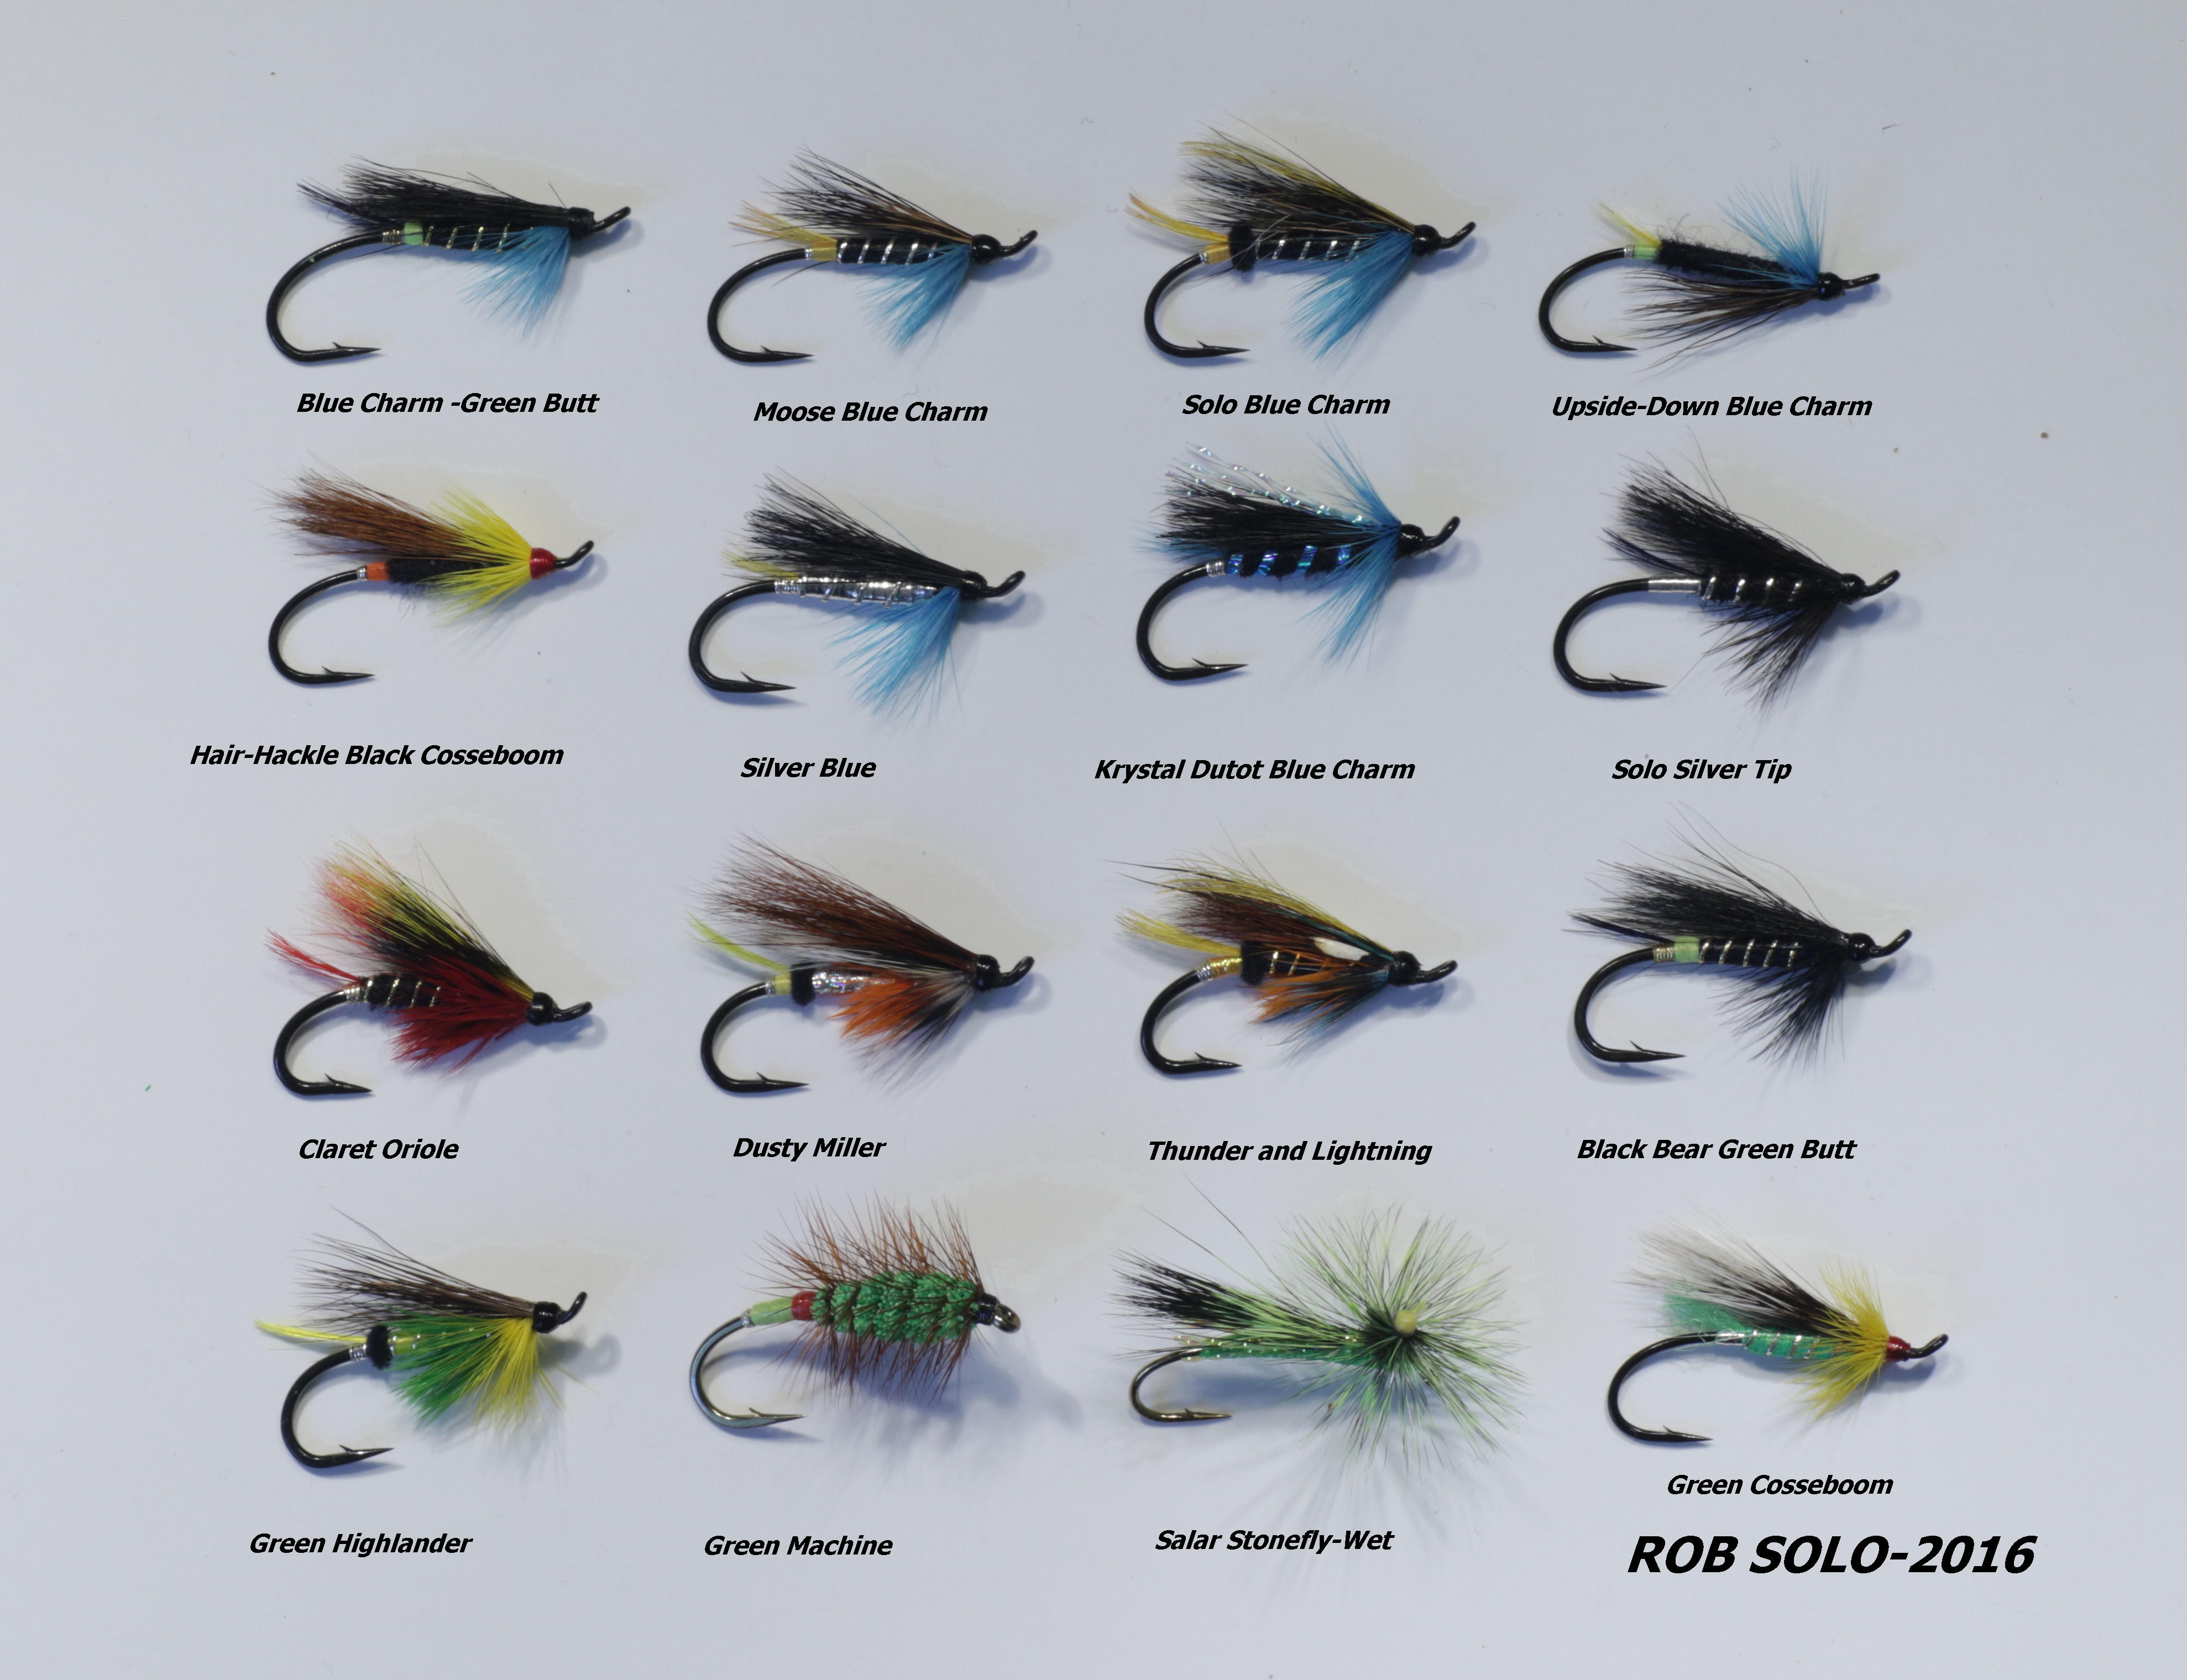 the flies Premium discount fly fishing flies, discount trout fishing flies start at low as 39 cents discount fishing flies for steelhead, salmon, bass, saltwater all hand-tied in our own facility wholesale flies also available a huge inventory of trout fly patterns, steelhead fly patterns, saltwater.